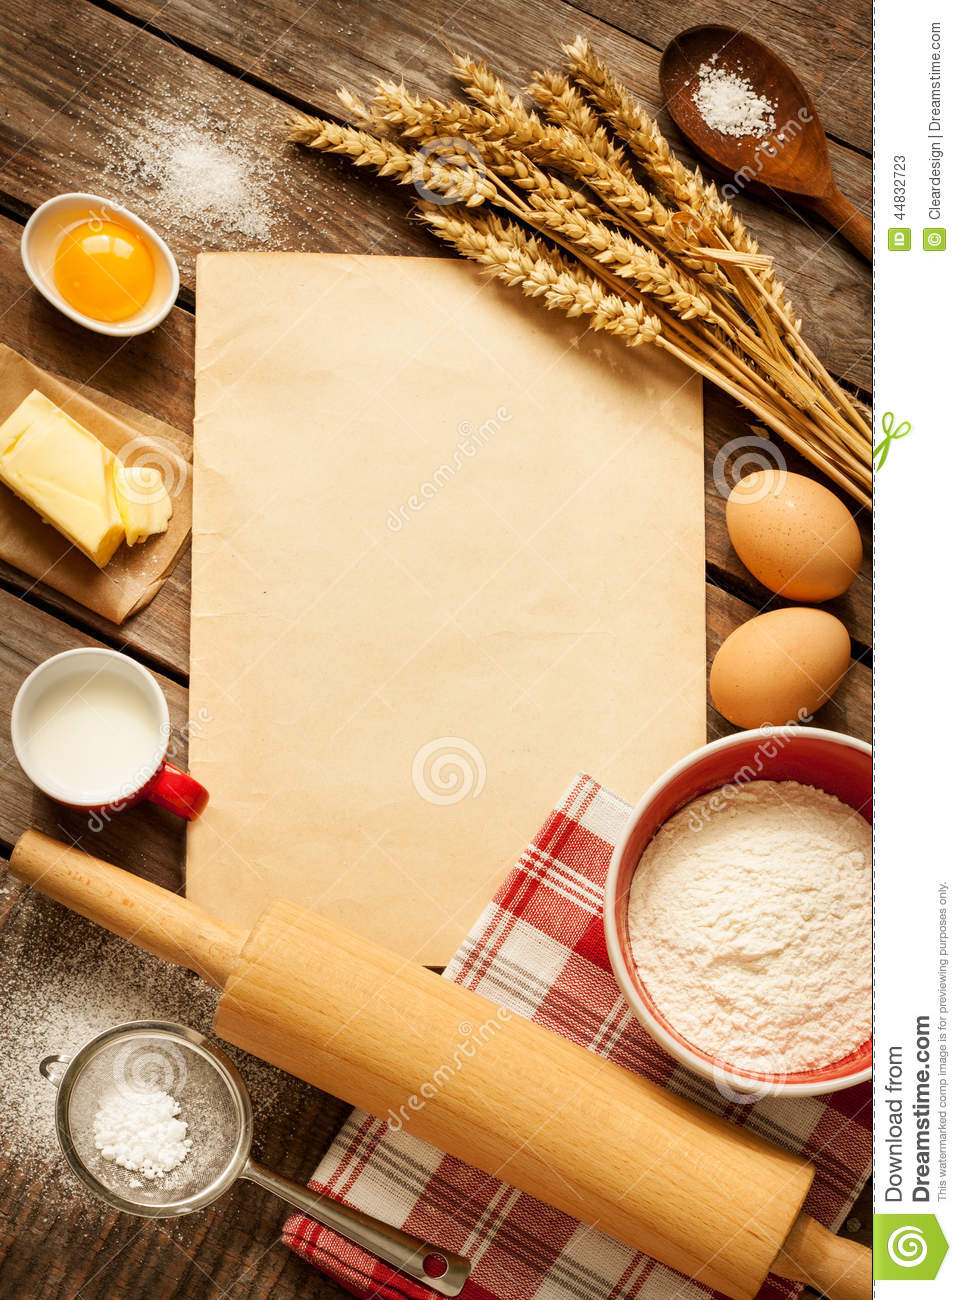 rural kitchen baking cake ingredients and blank paper